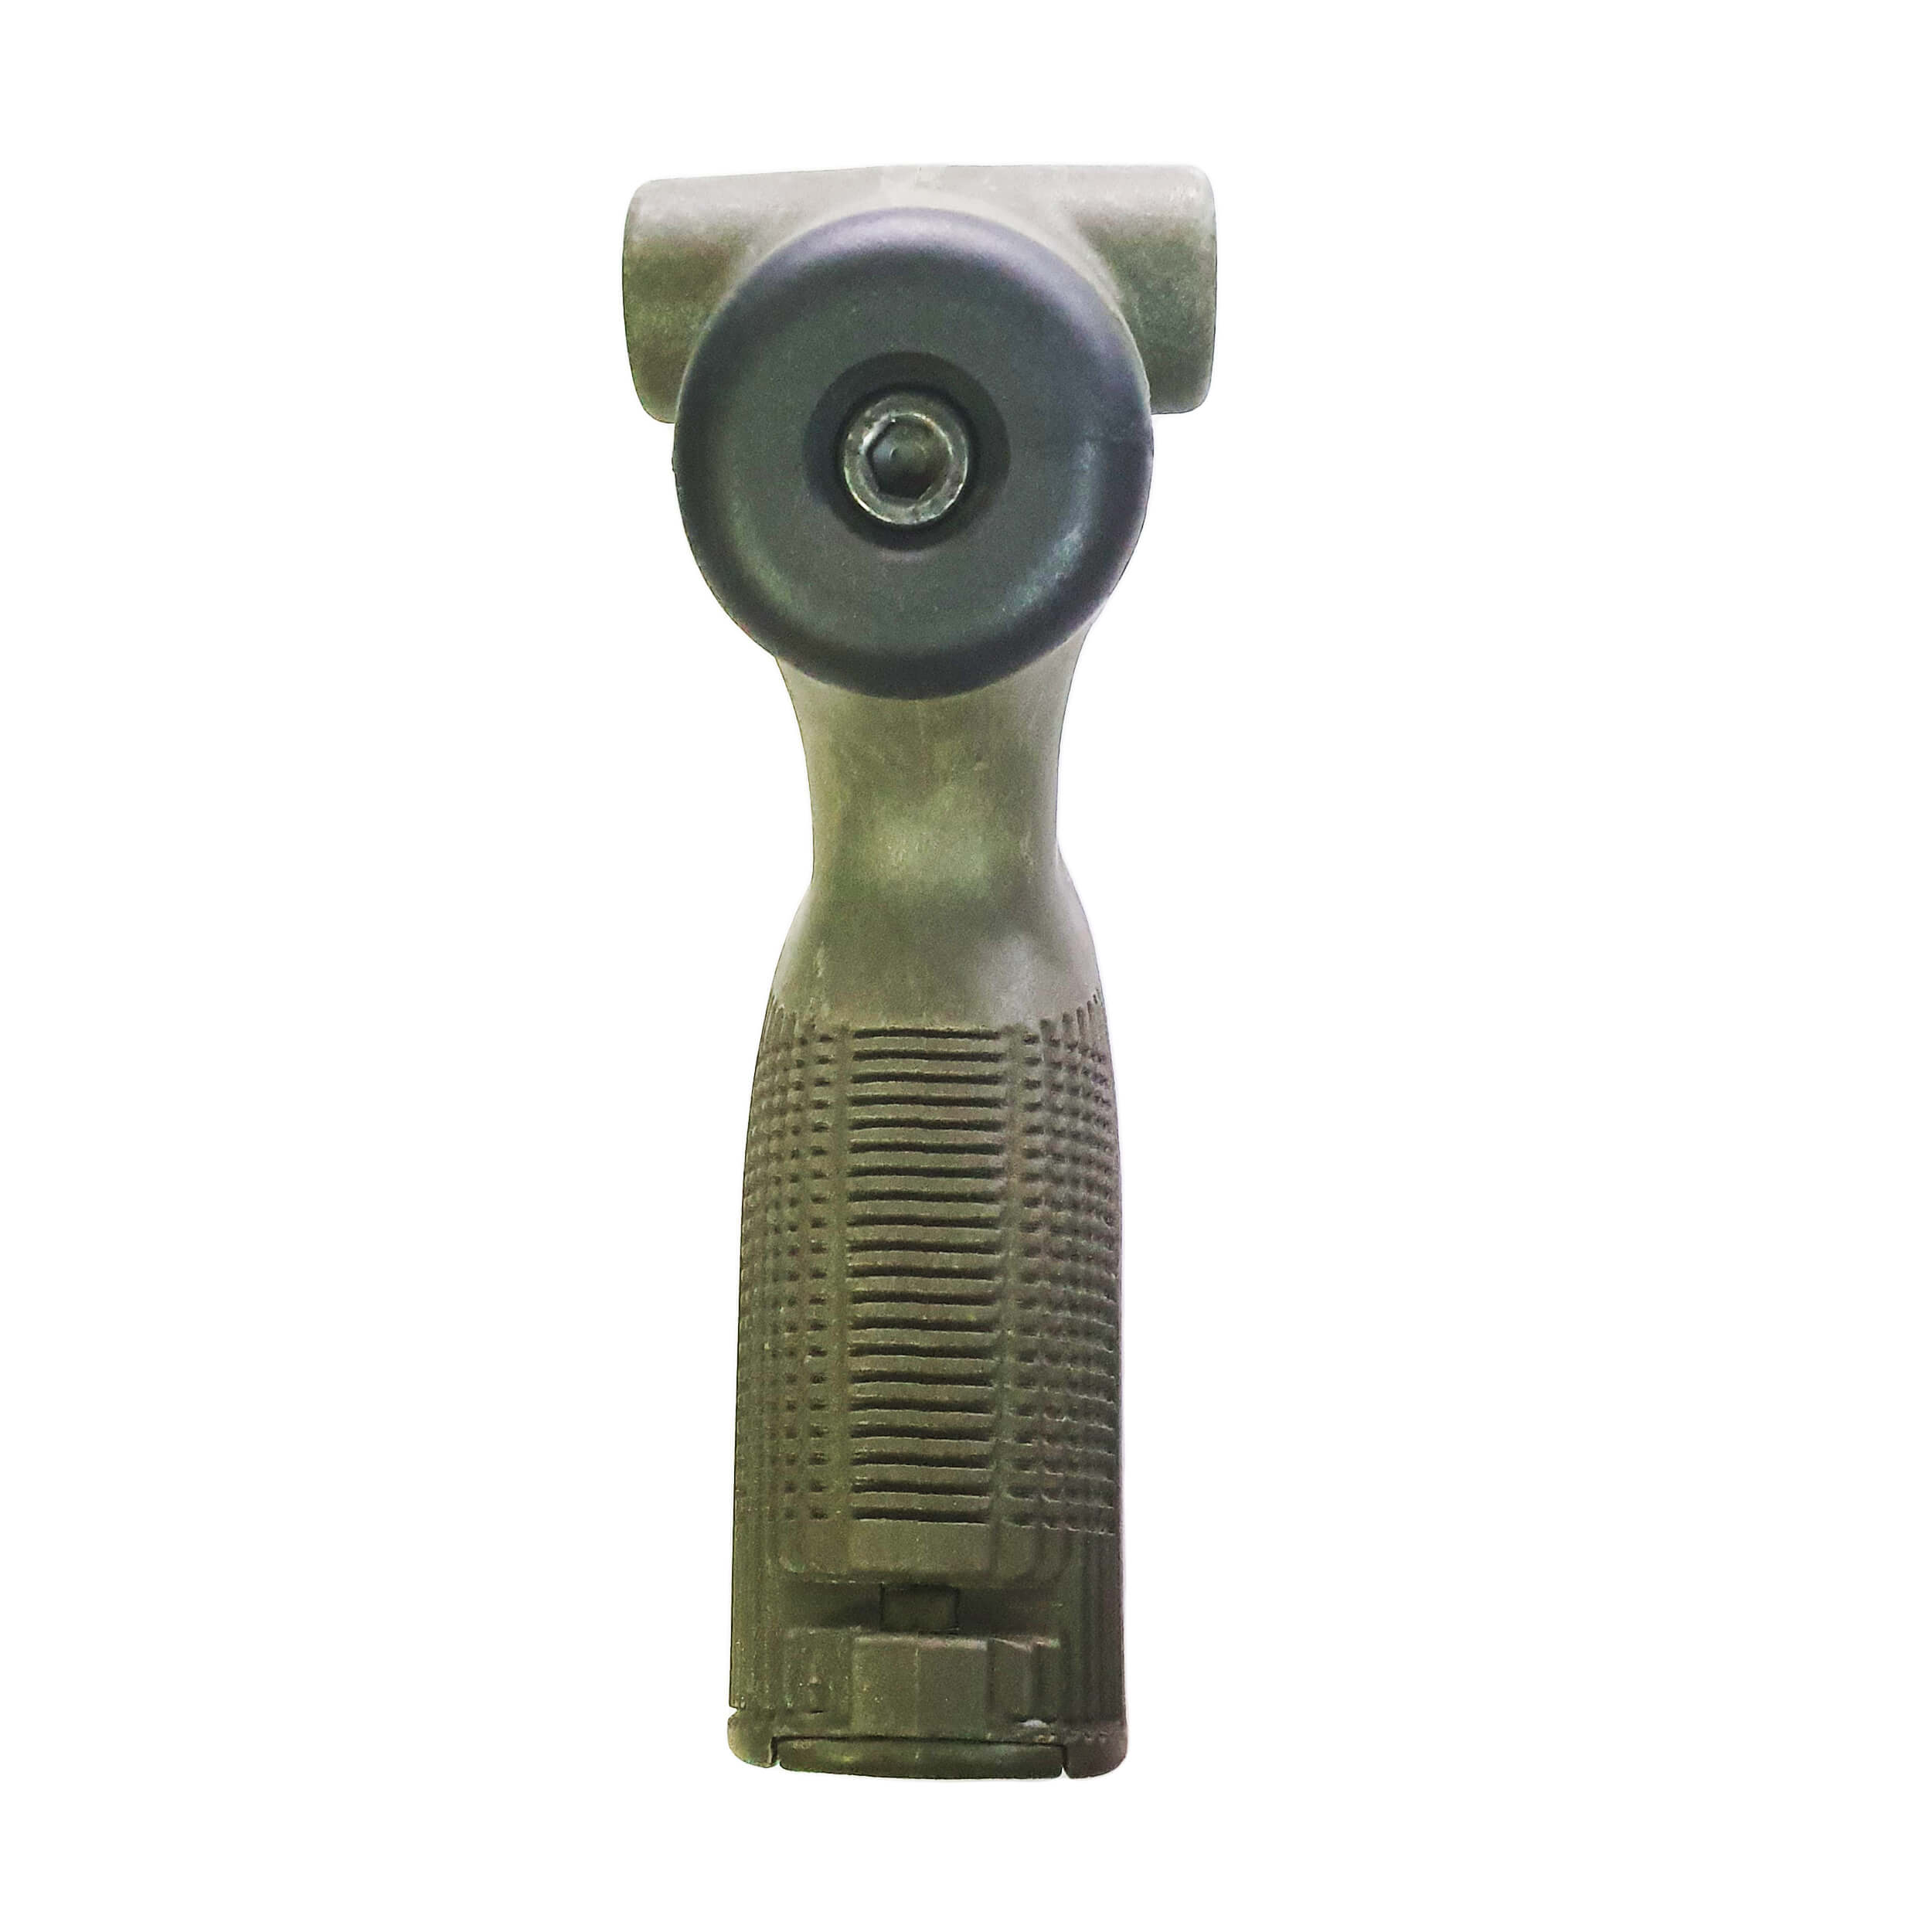 AGM-500 Pistol Grip for Mossberg 500 / 590 with black back cap